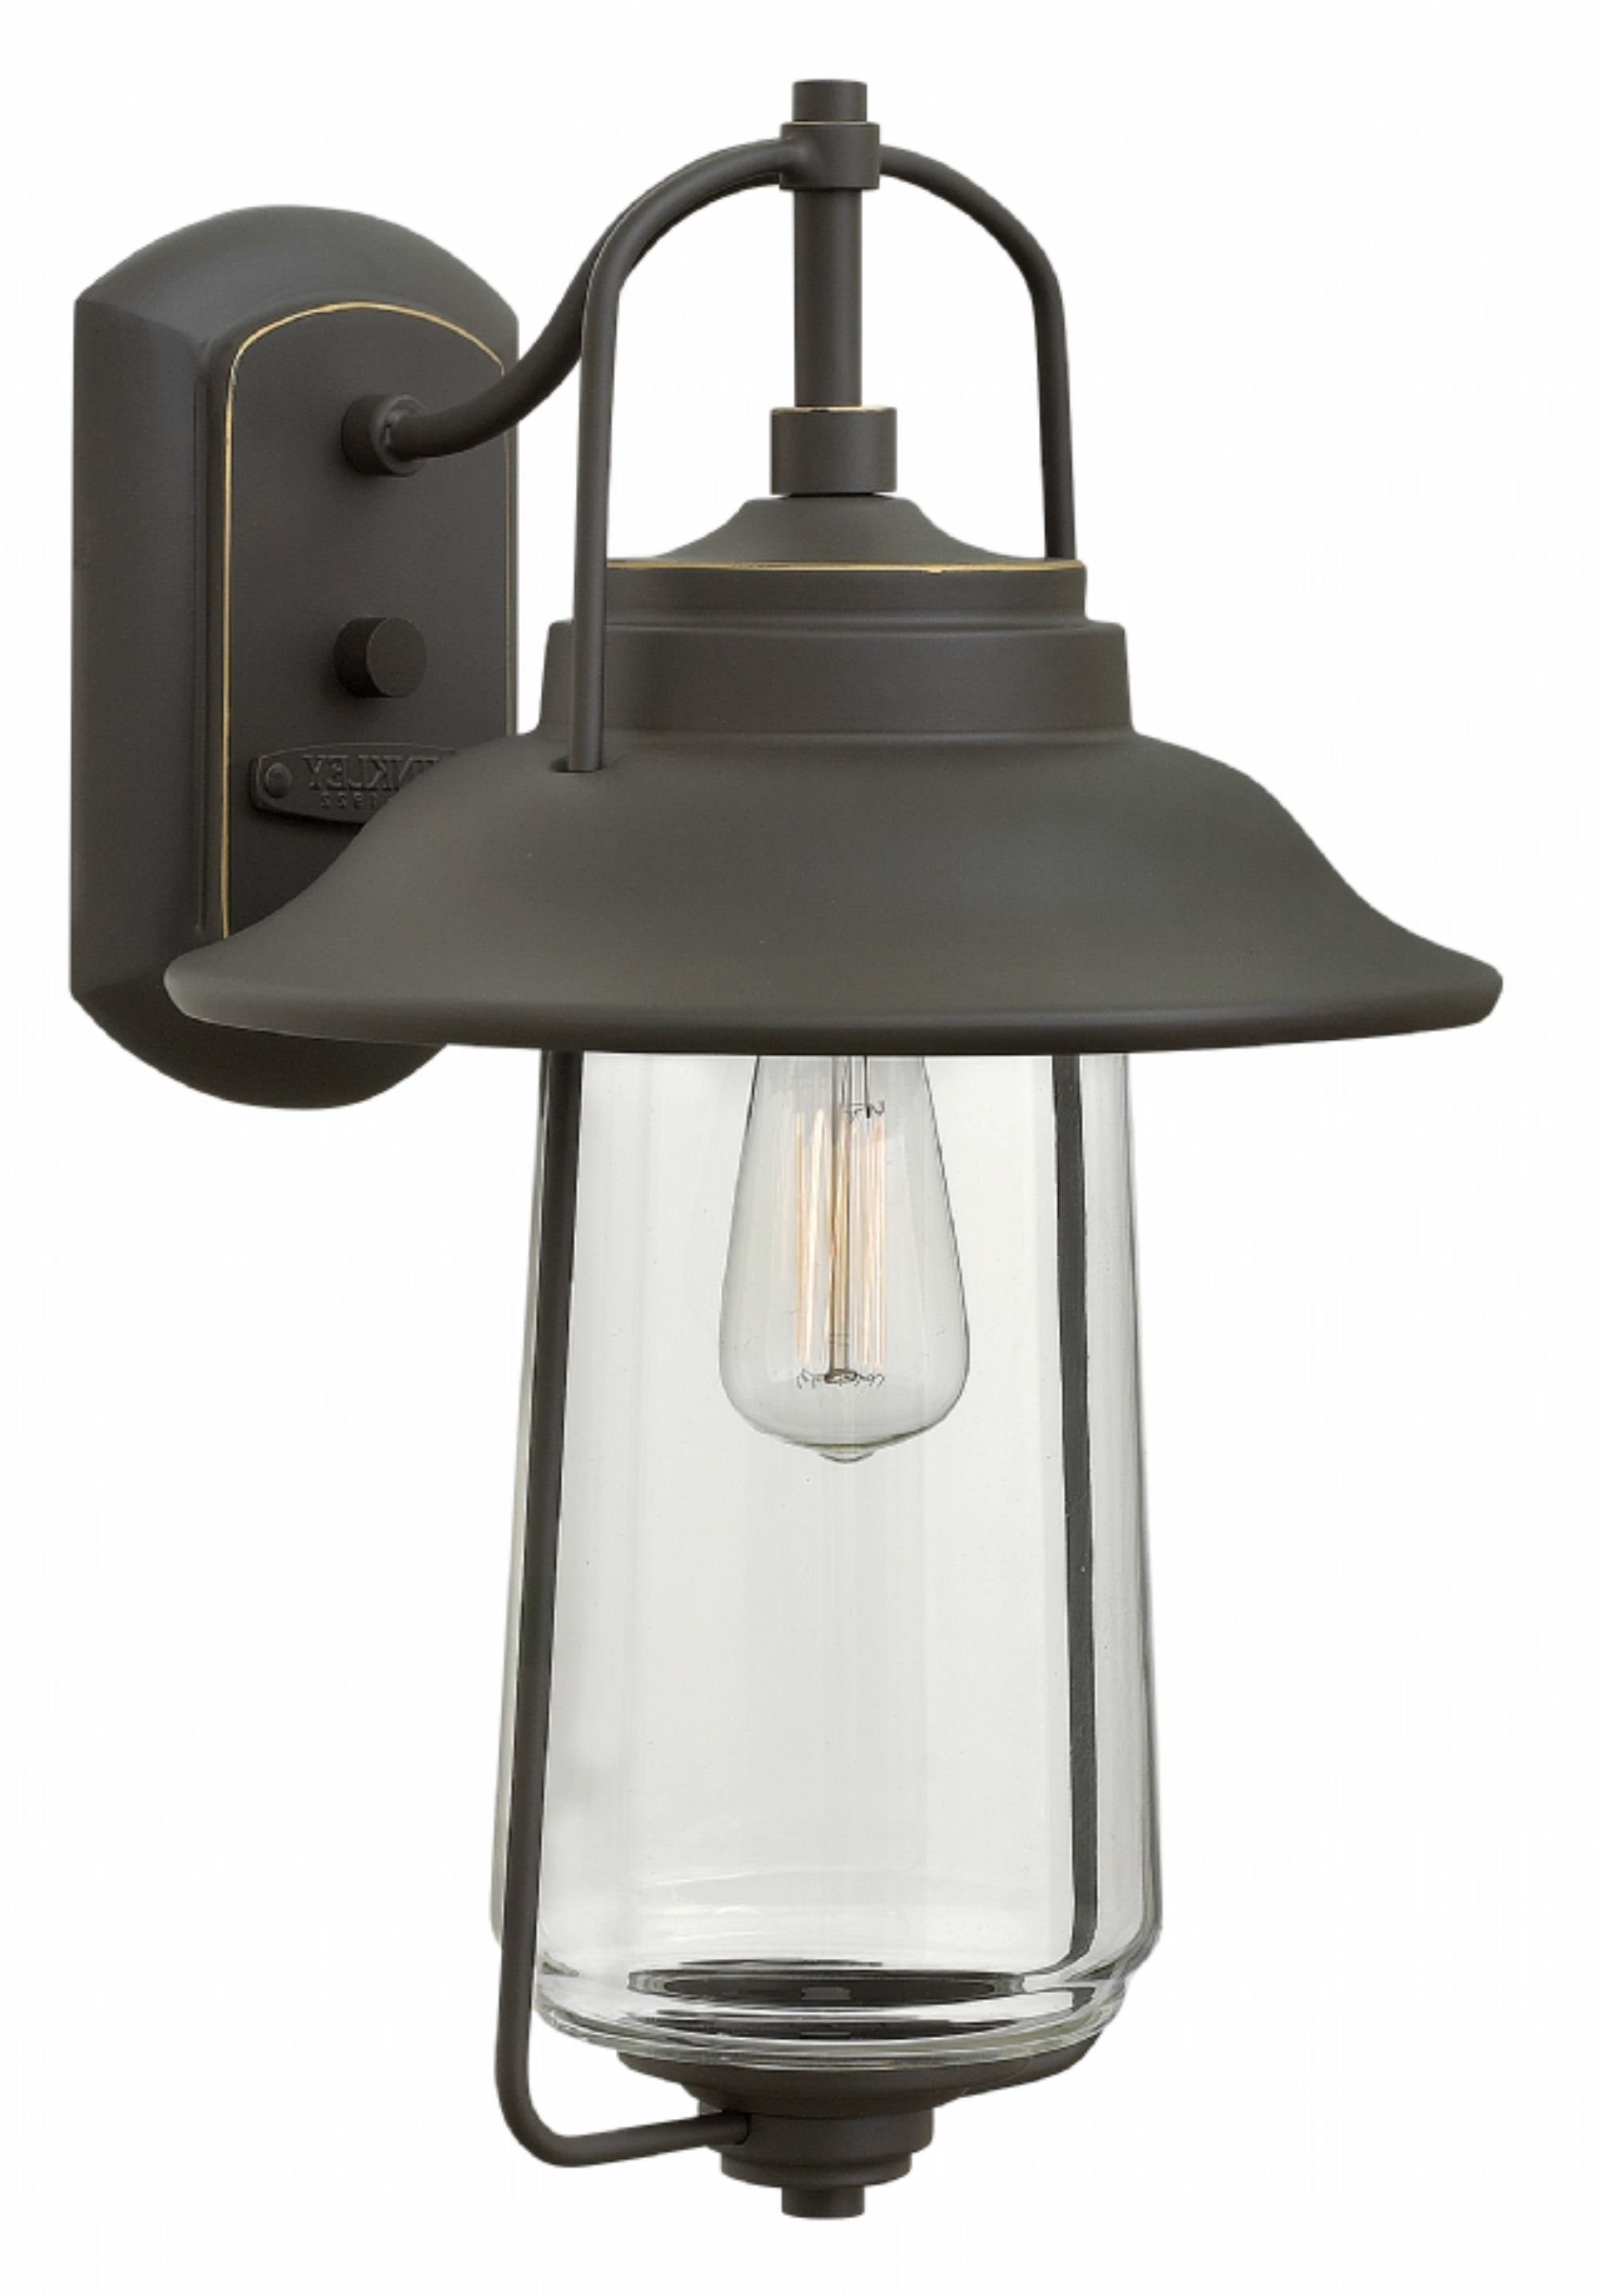 Pottery Barn Outdoor Wall Lighting Pertaining To Recent Lighting : Bel Air Lighting Farmhouse Light Outdoor Black Wall (View 4 of 20)